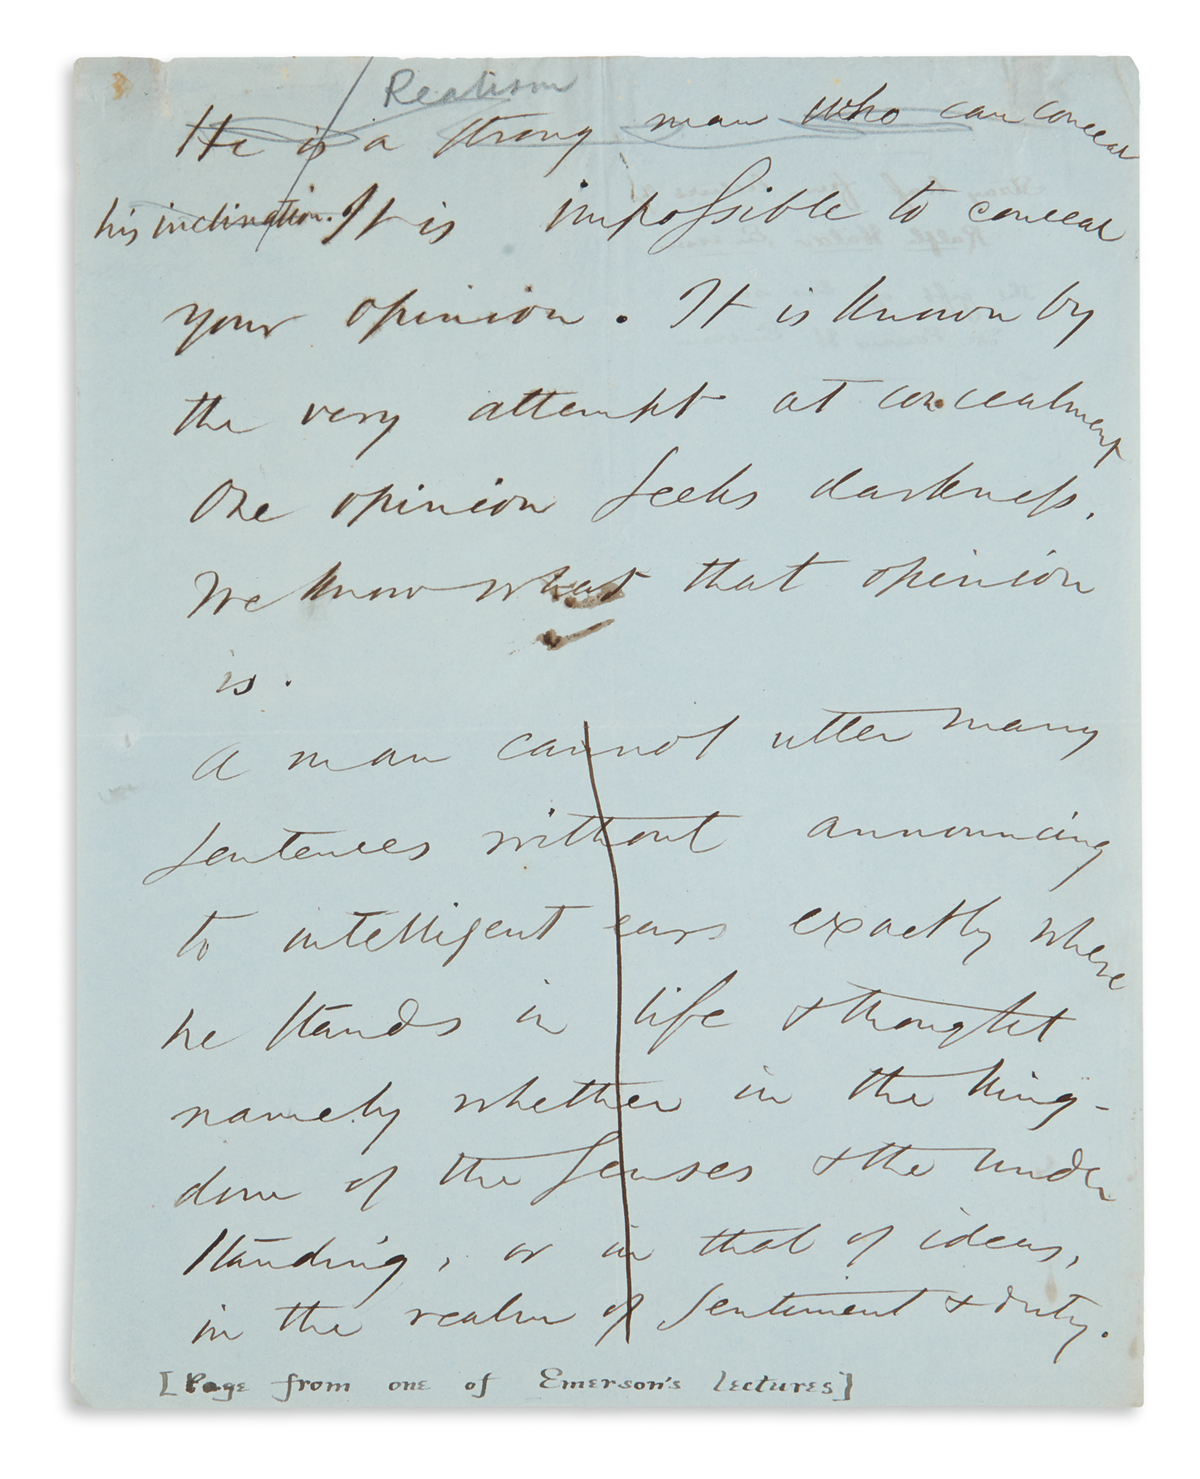 LEAF FROM HIS NOTEBOOK RALPH WALDO EMERSON. Autograph Manuscript, unsigned, fragment of 14 lines in i...